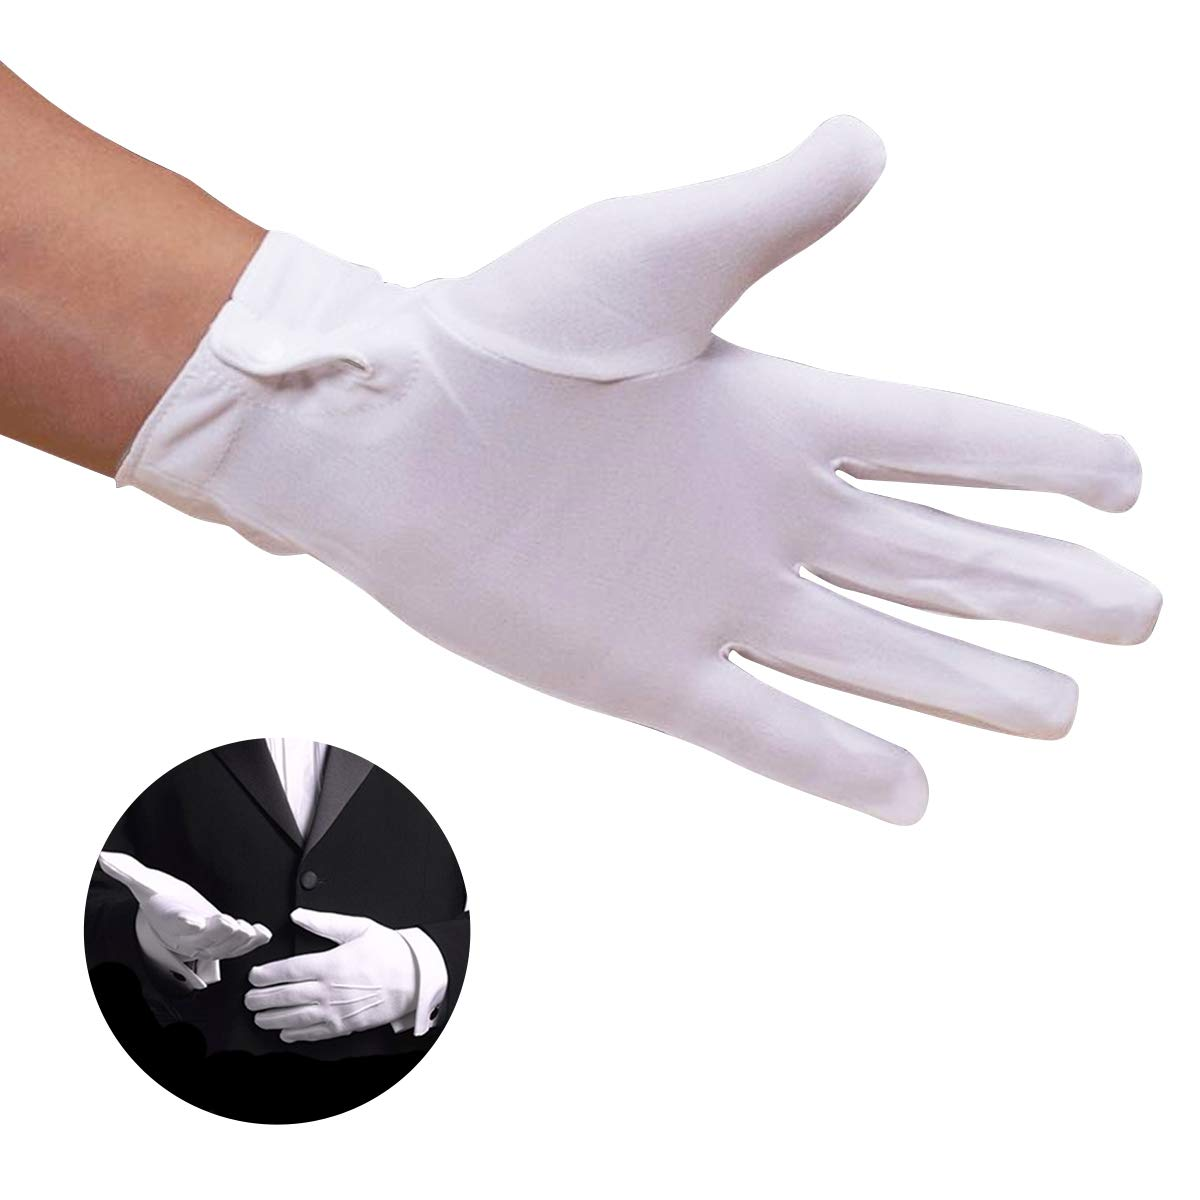 12 Pairs White Gloves for Childrens Hand Moisturizing Gloves Pure Cotton Gloves for Police Formal Tuxedo Honor Guard and Special Occasions